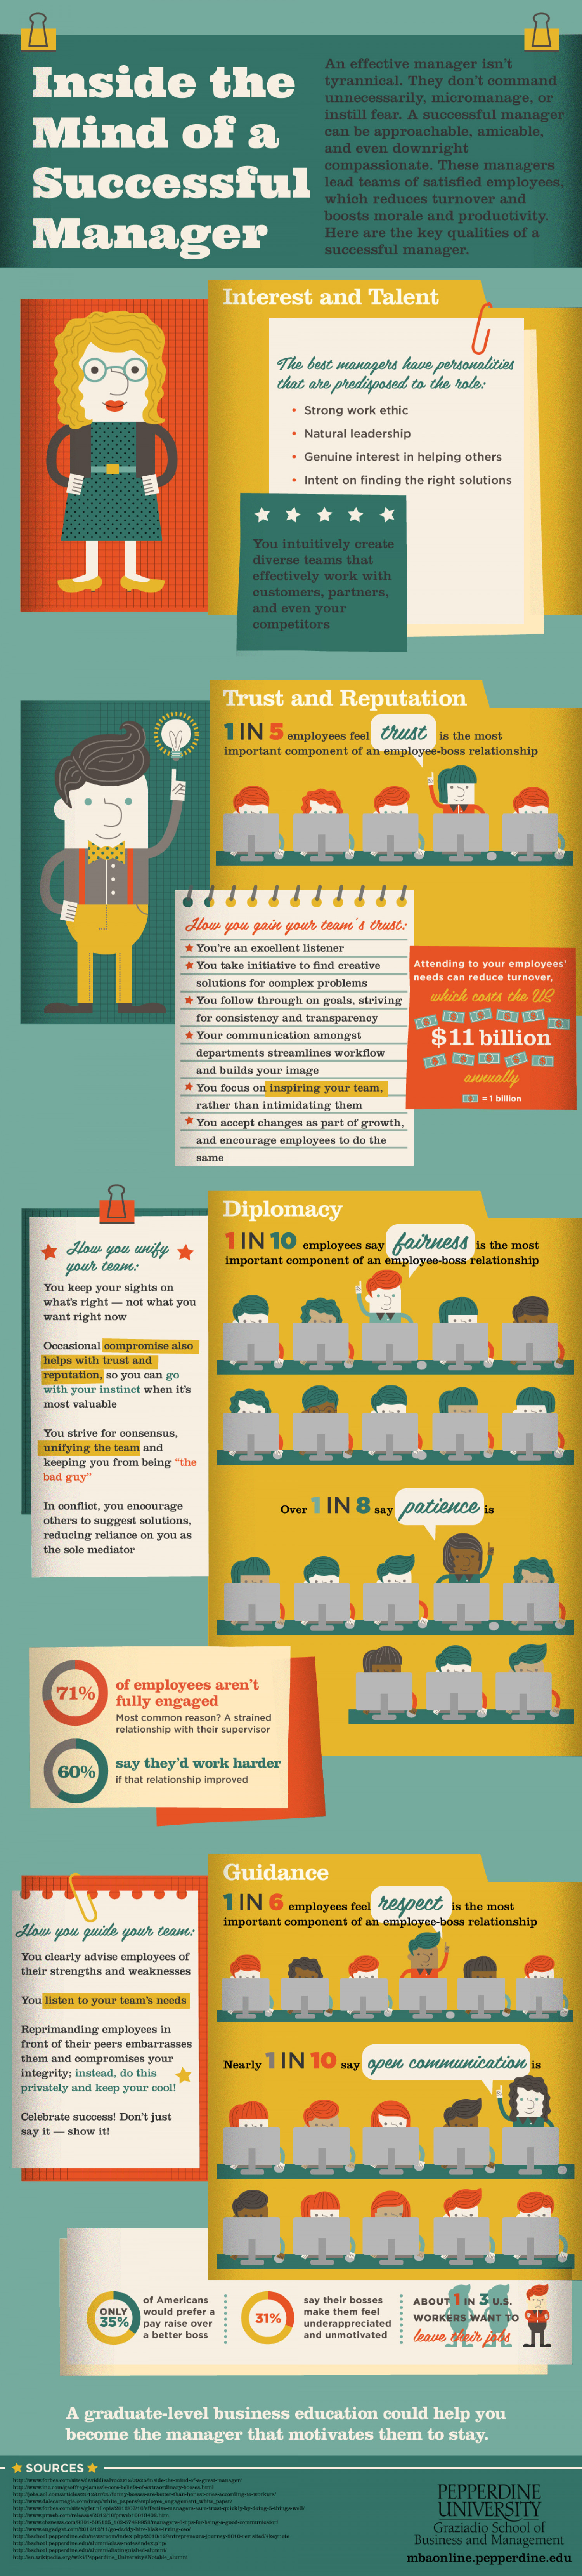 Inside the mind of a Successful Manager Infographic